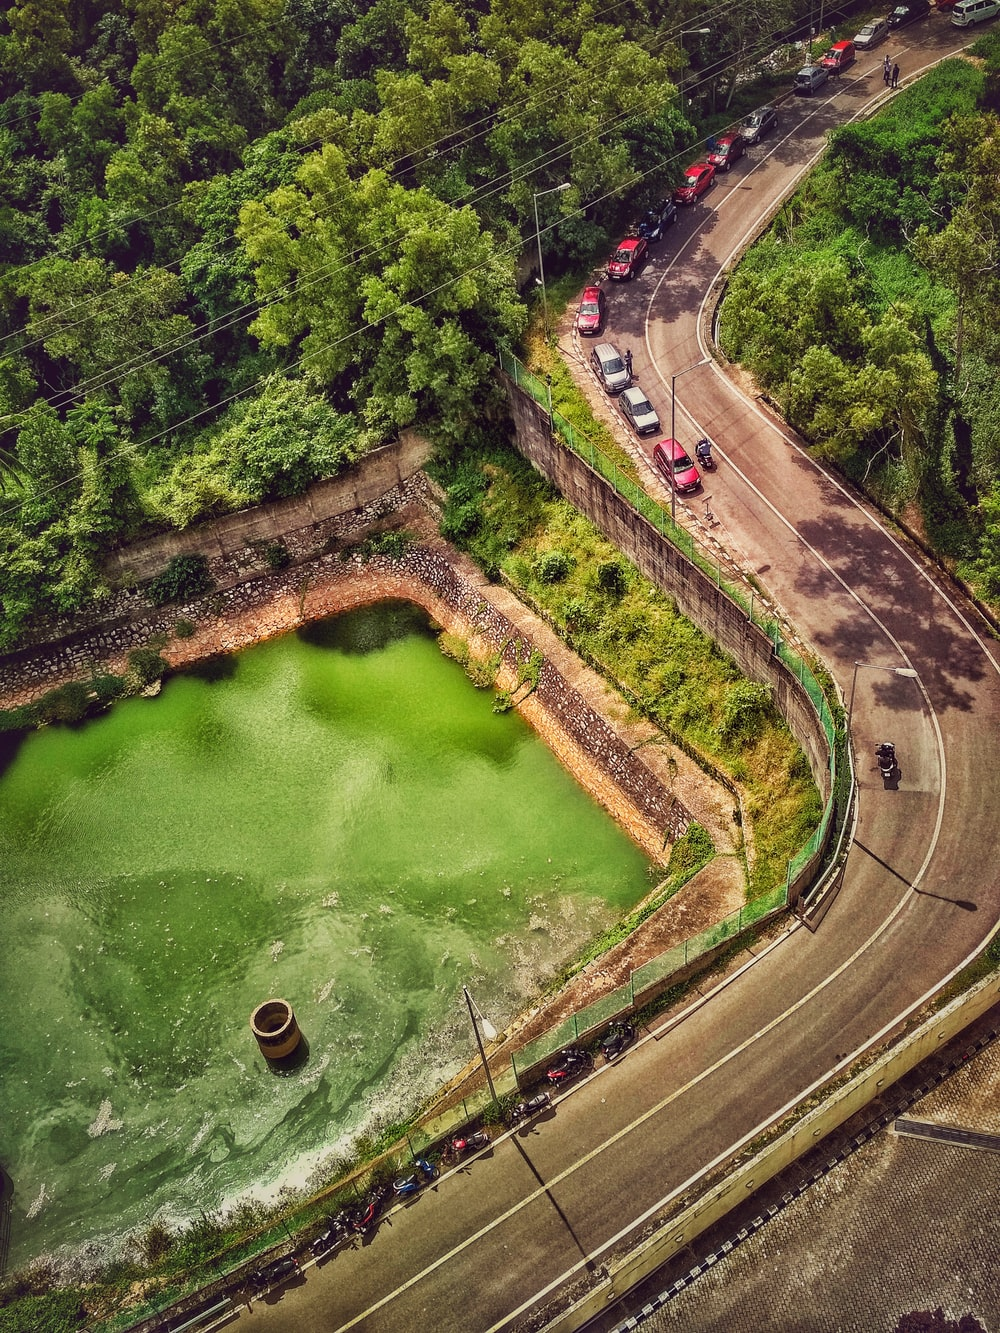 aerial photo of cars on road near green body of water